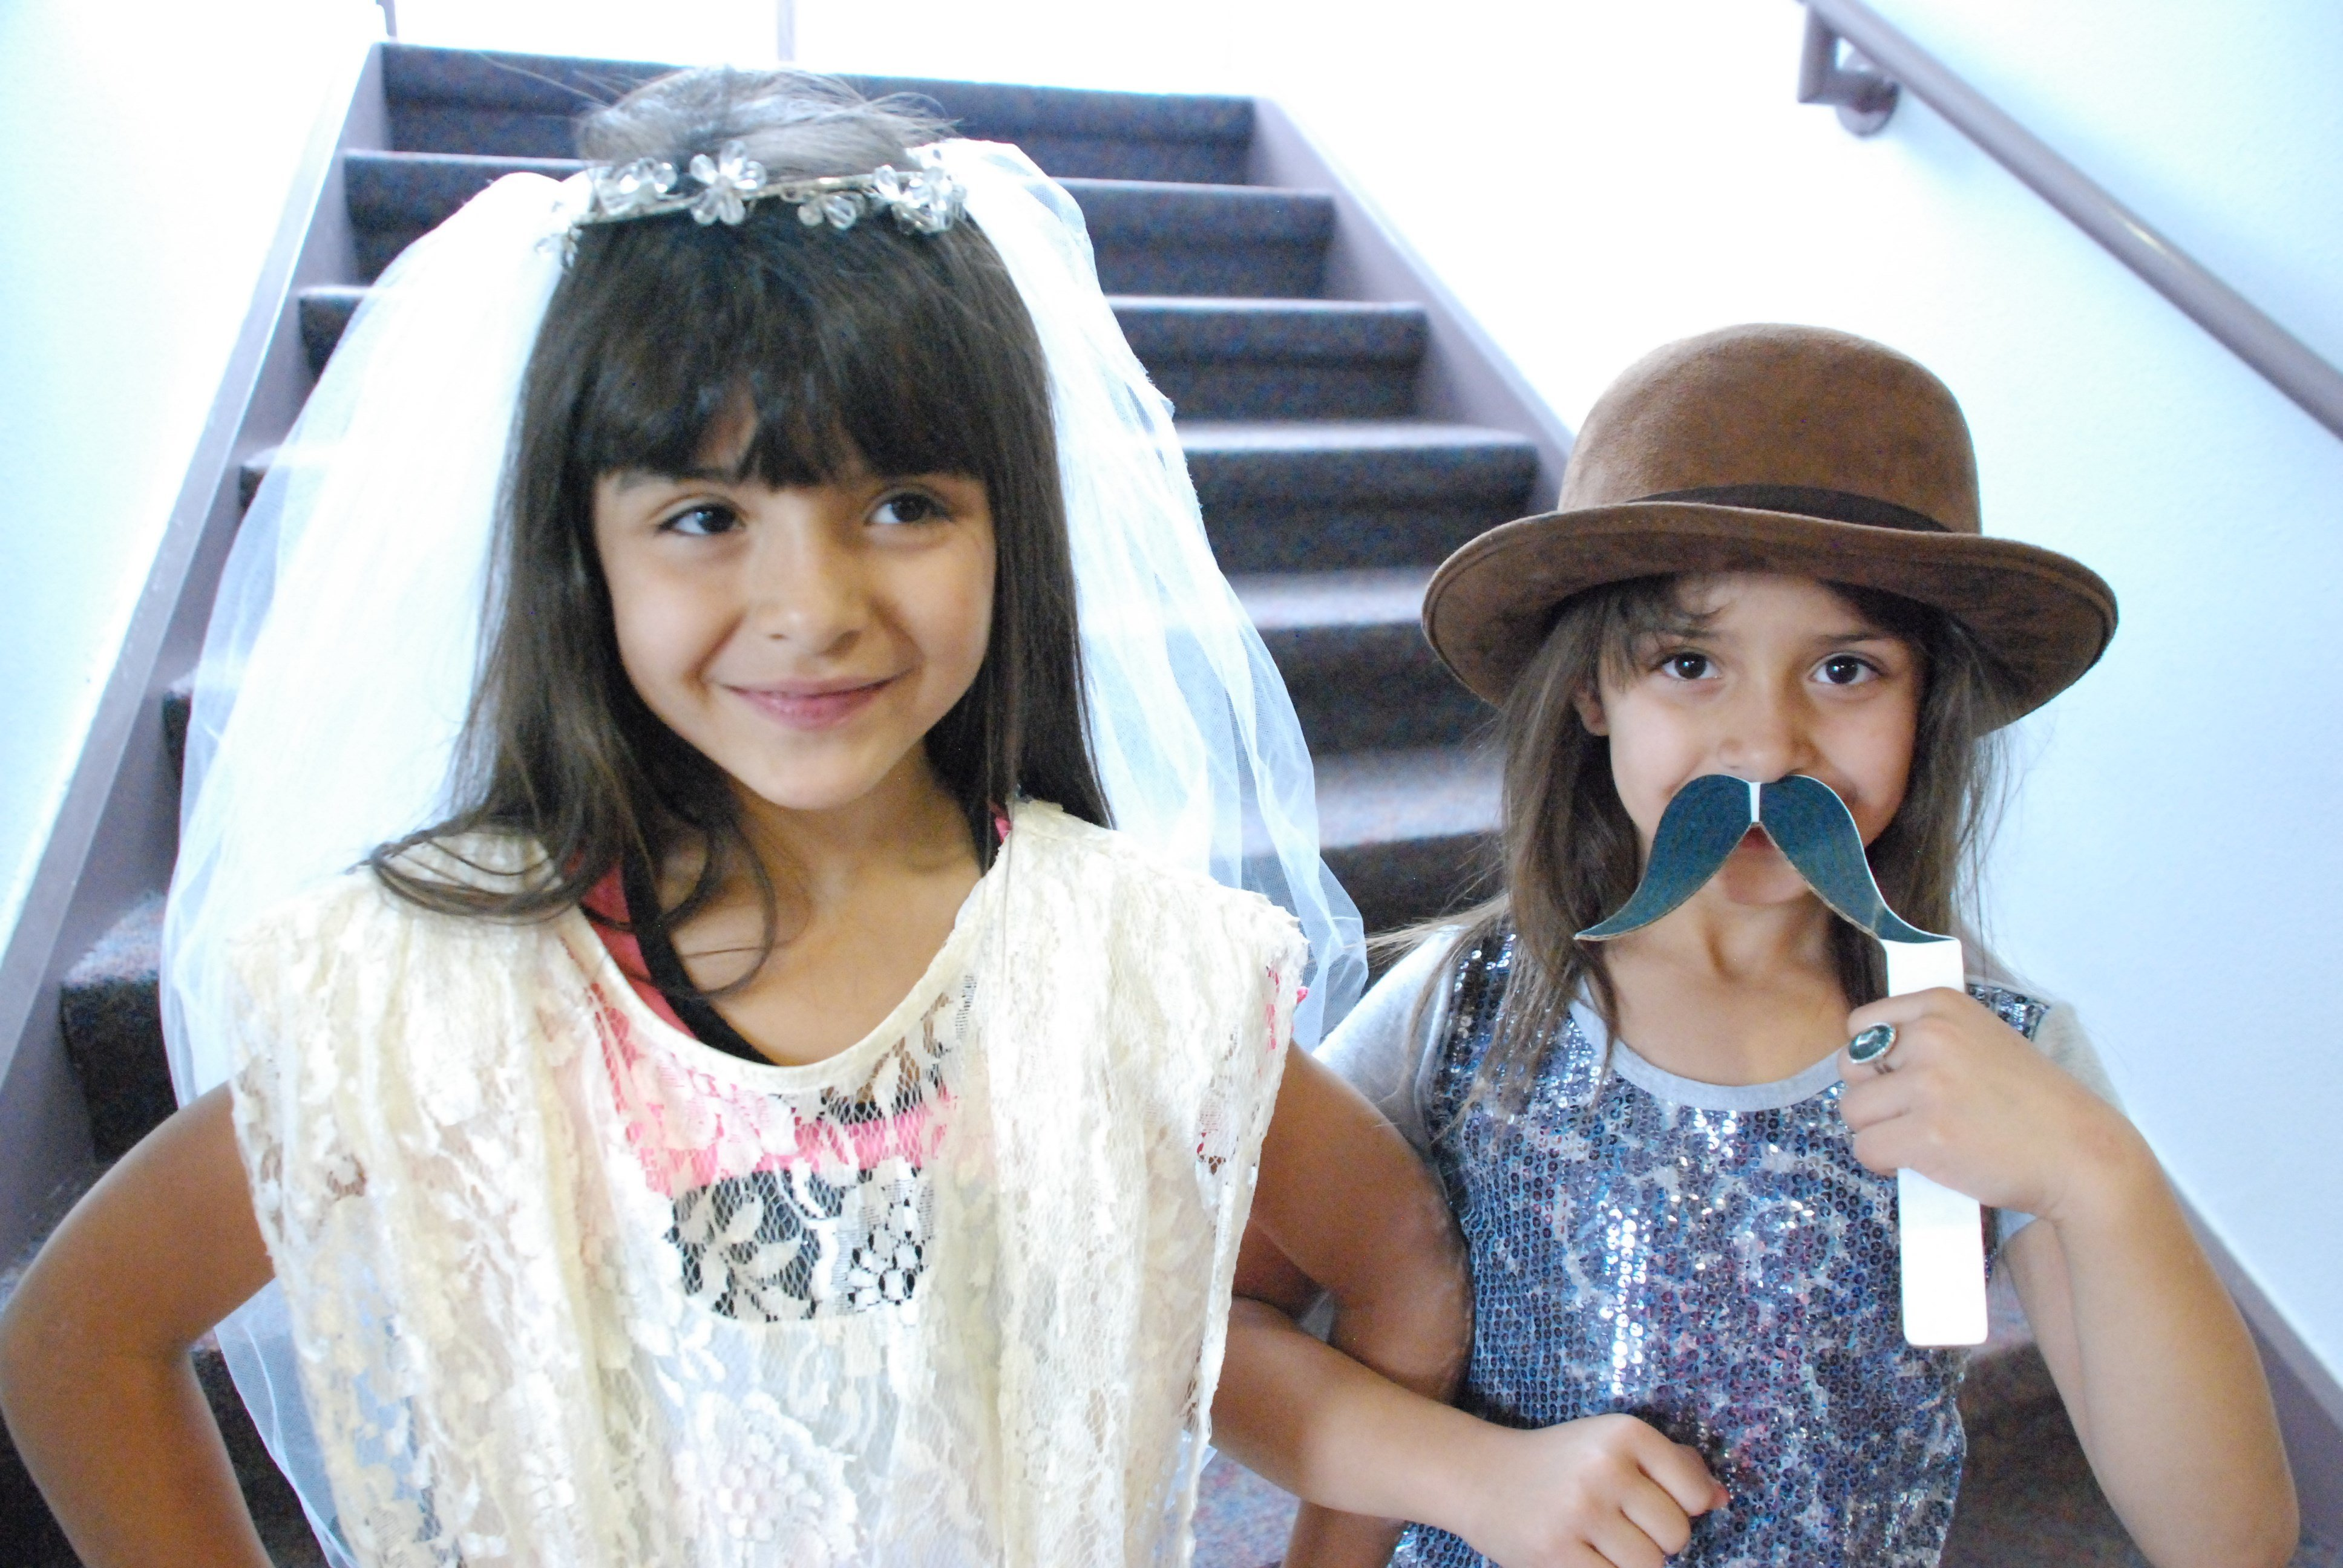 Ariana and Riana Tafoya taking part in Puebloween event.